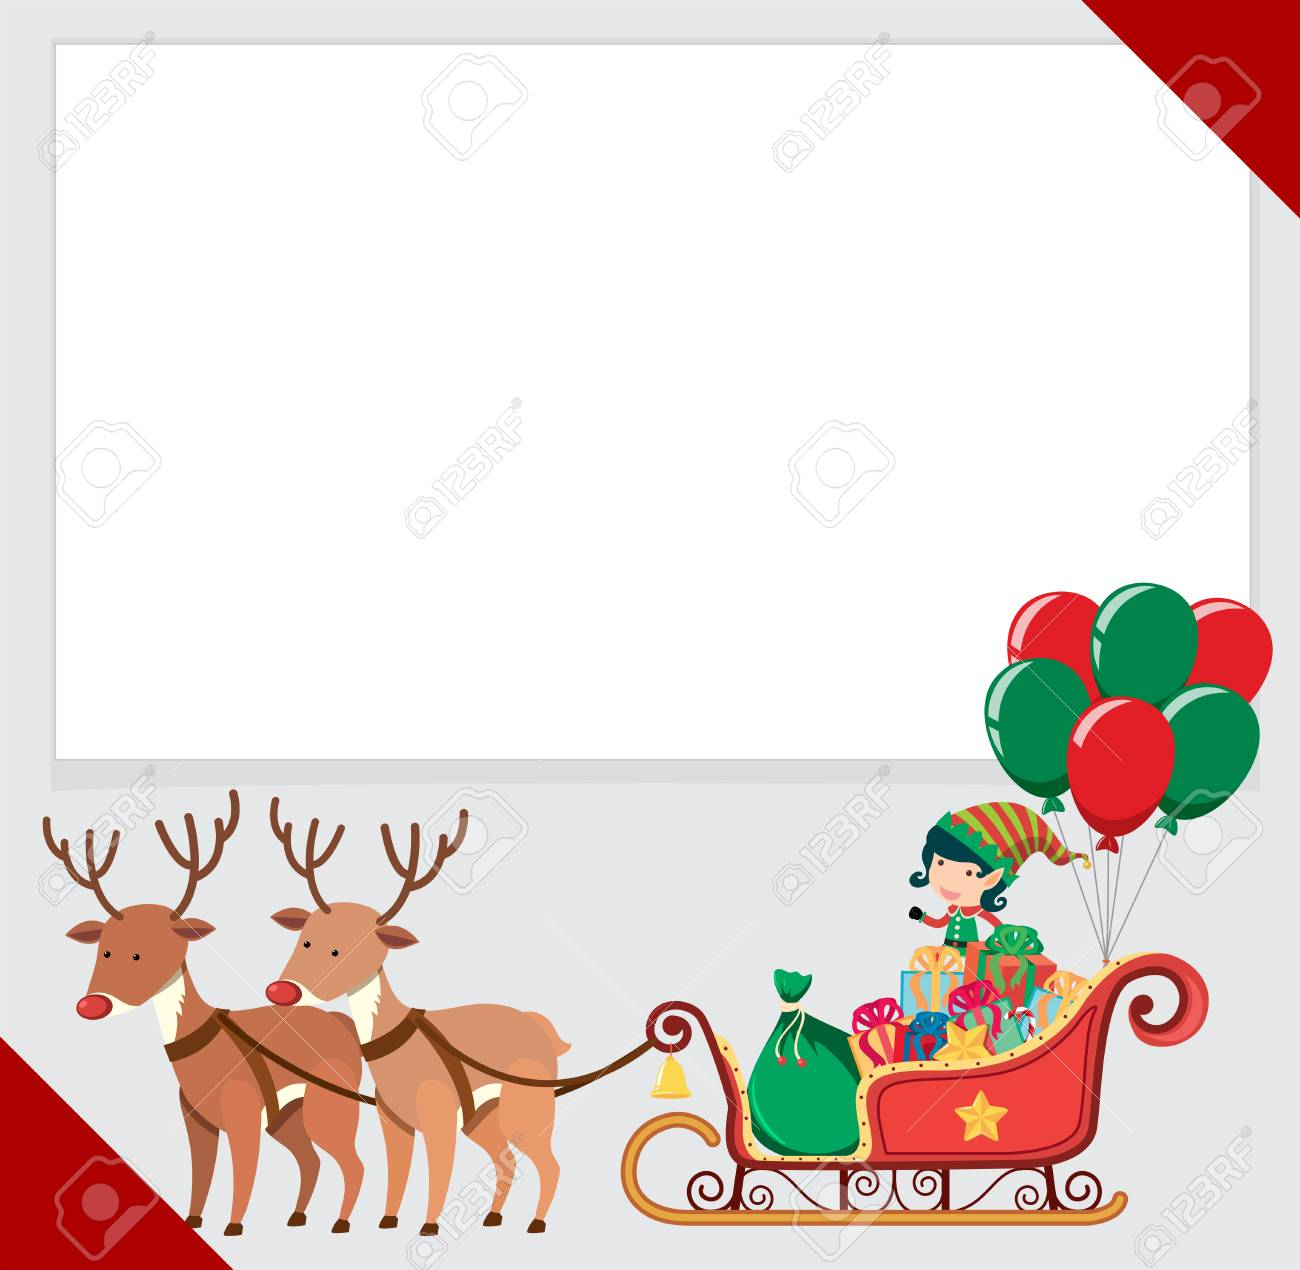 border template with elf and reindeers illustration royalty free